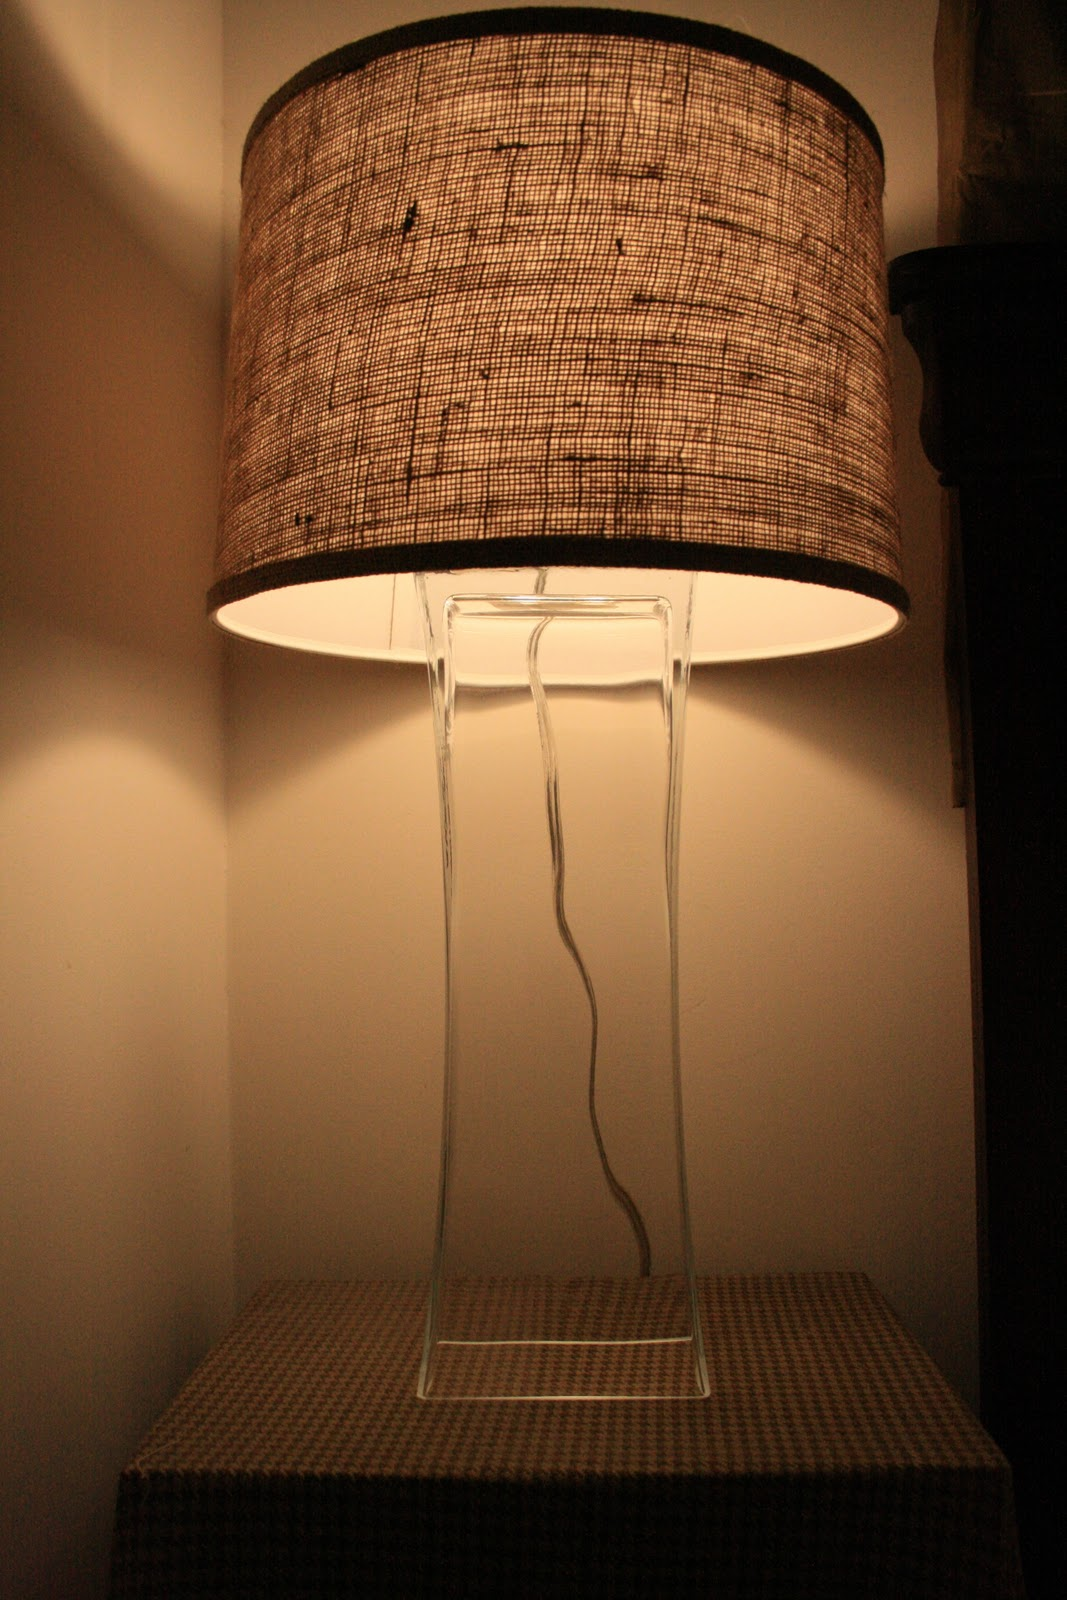 Remodelaholic upcycled diy chandelier lamp use a vase to make a lamp featured on remodelaholic reviewsmspy